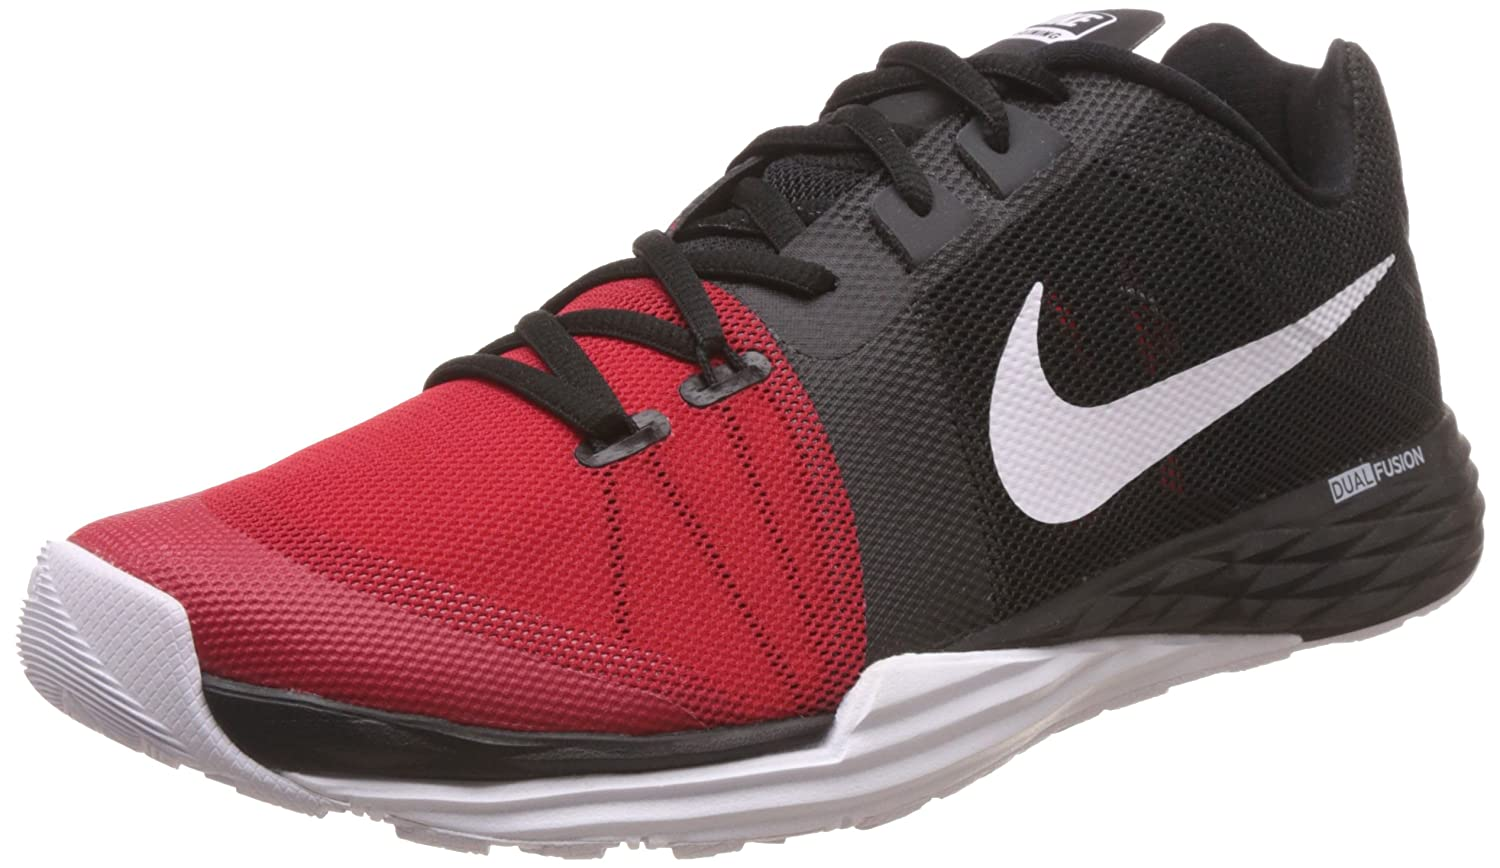 NIKE Men's Train Prime Iron DF Cross Trainer Shoes B014GMYSZA 11 D(M) US|Black/White/University Red/Anthracite